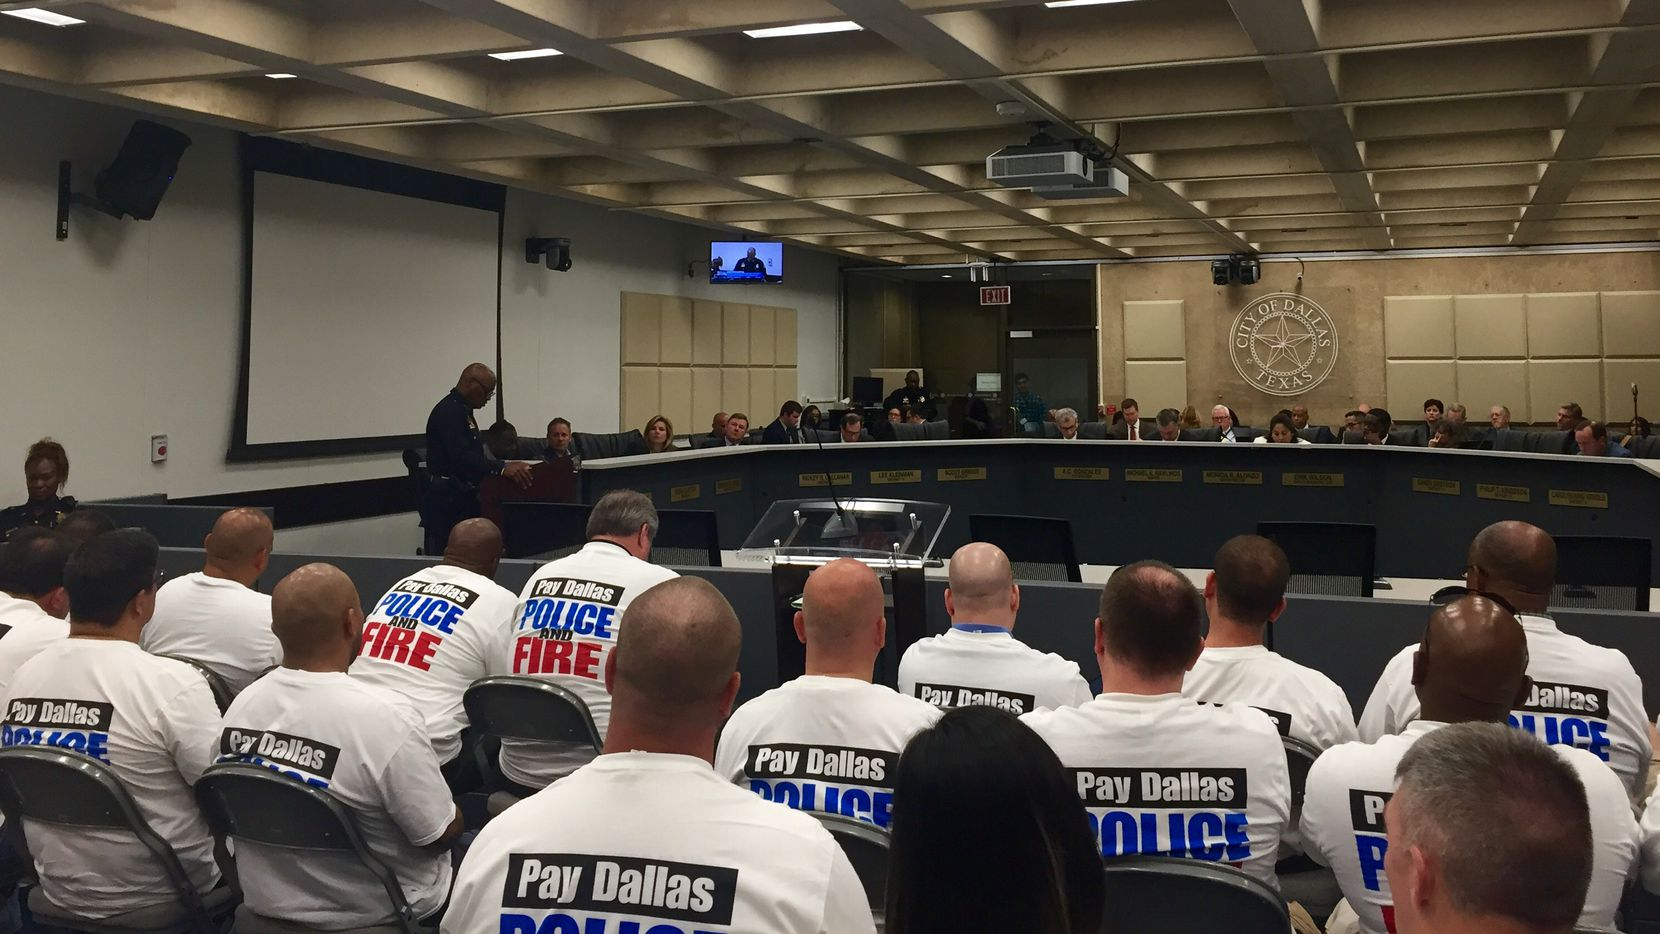 Dallas police Chief David Brown updated the Dallas City Council on the investigation of the downtown ambush July 7 that killed five police officers and wounded seven others. The briefing came before a budget discussion on hiring more officers and giving raises to police officers and firefighters.